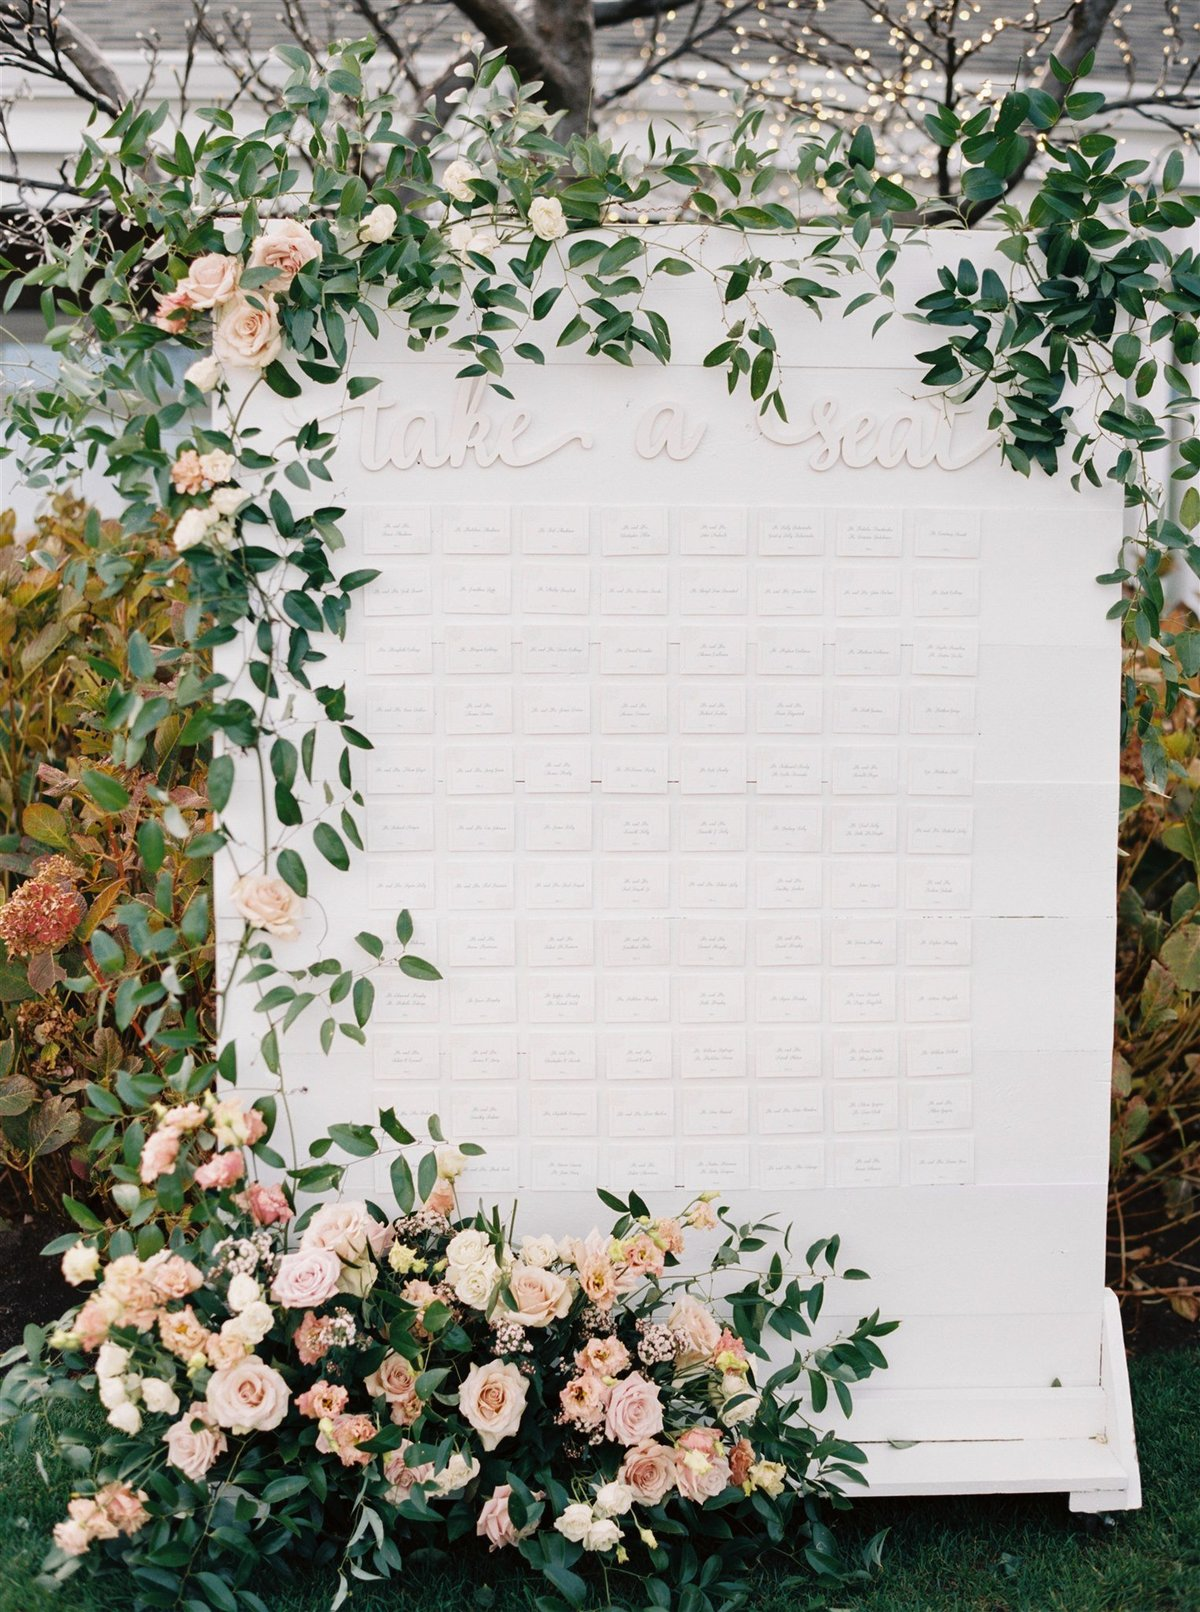 Unique escort card display and seating chart by creative wedding planner on Cape Cod